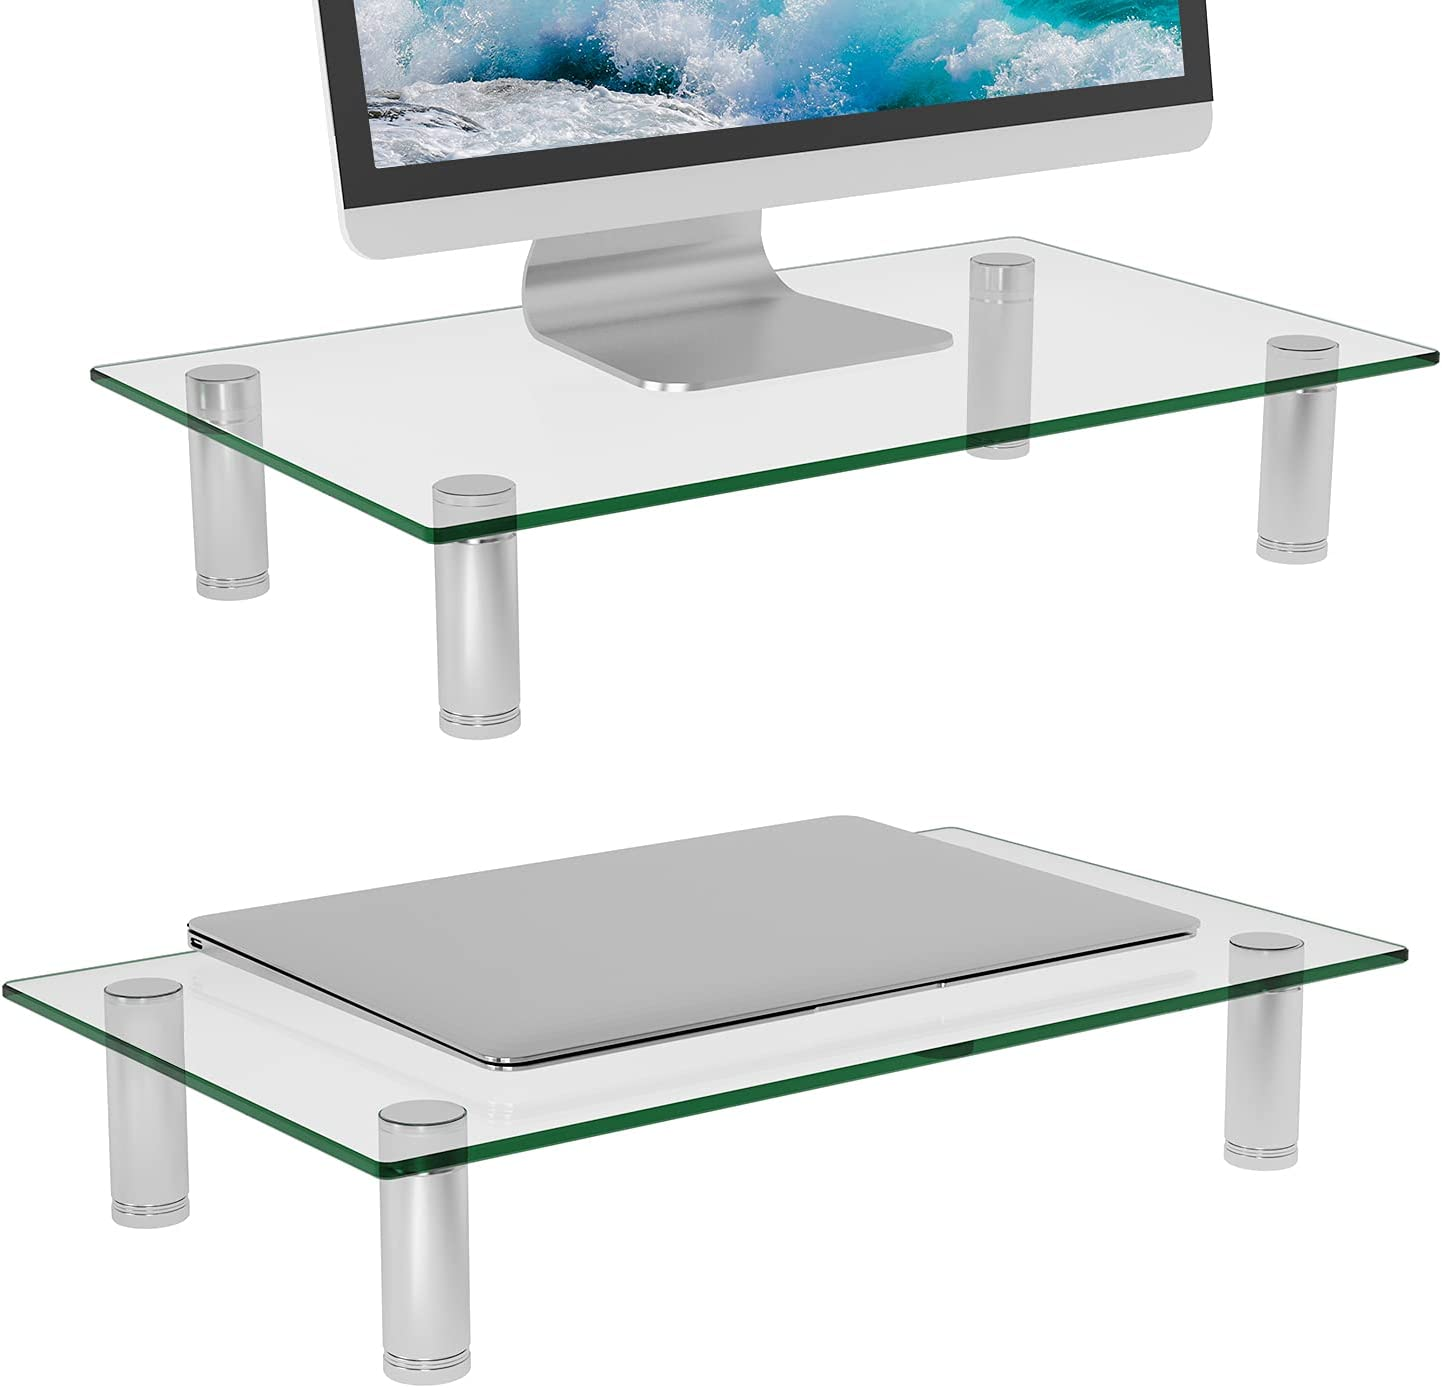 WALI Tempered Glass Monitor Riser Dual Computer Desktop Stand Height Adjustable Table Top for Flat Screen LCD LED TV, Laptop, Notebook, Display (GTT01-2), 2 Pack